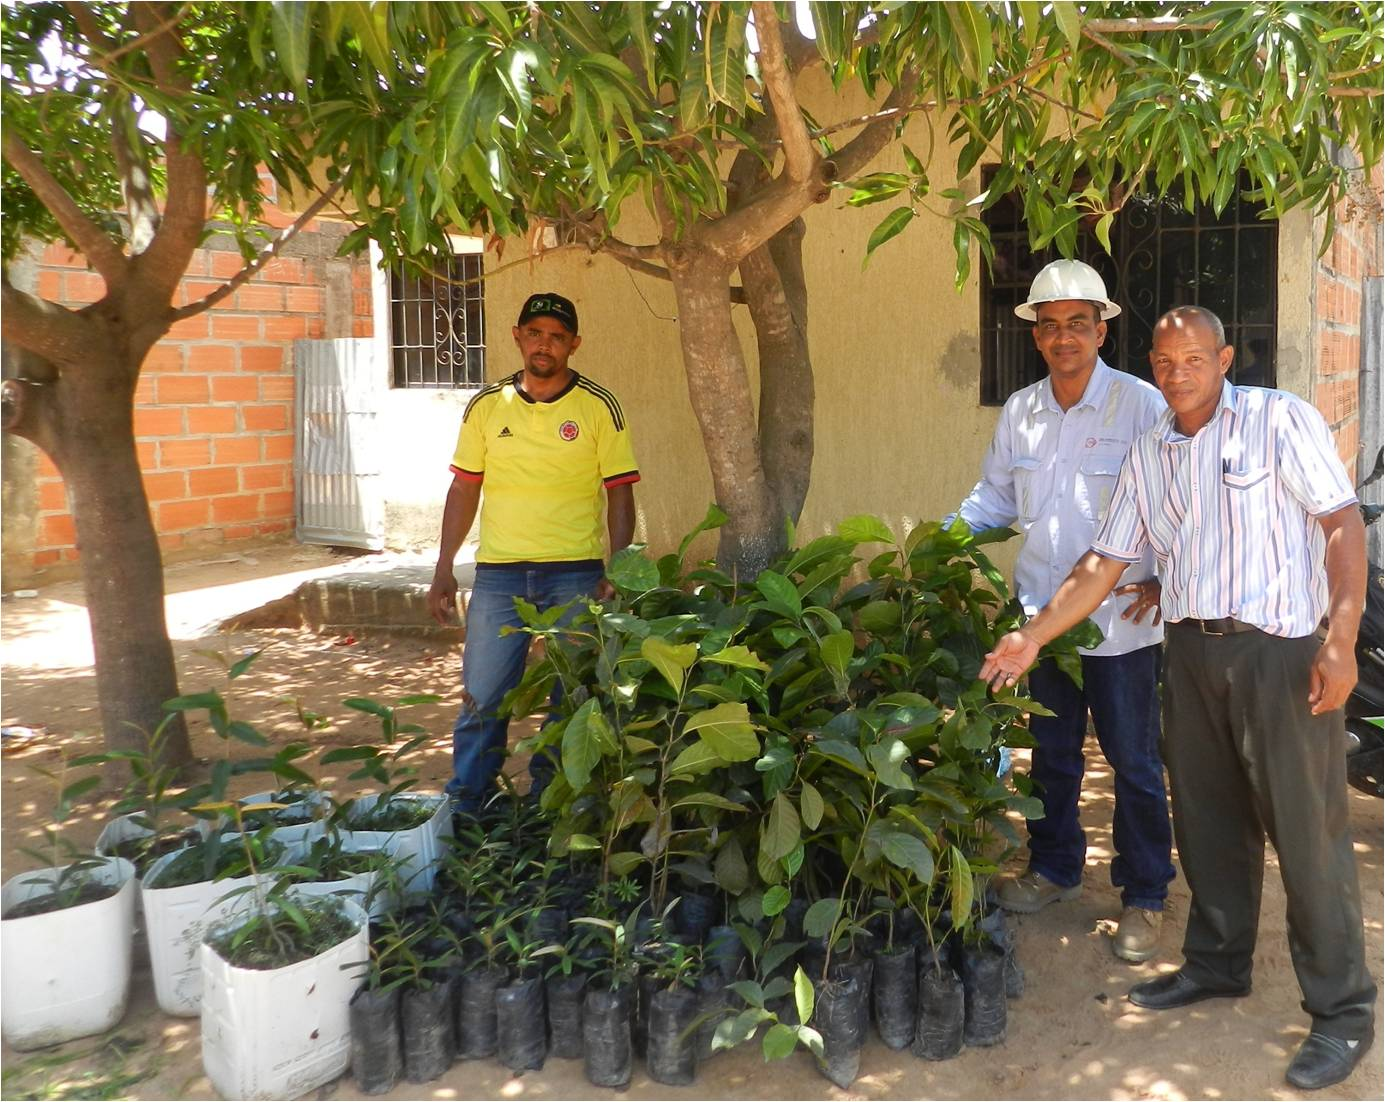 *The inhabitants of the Comcaja neighborhood of the township of La Loma received 120 trees.